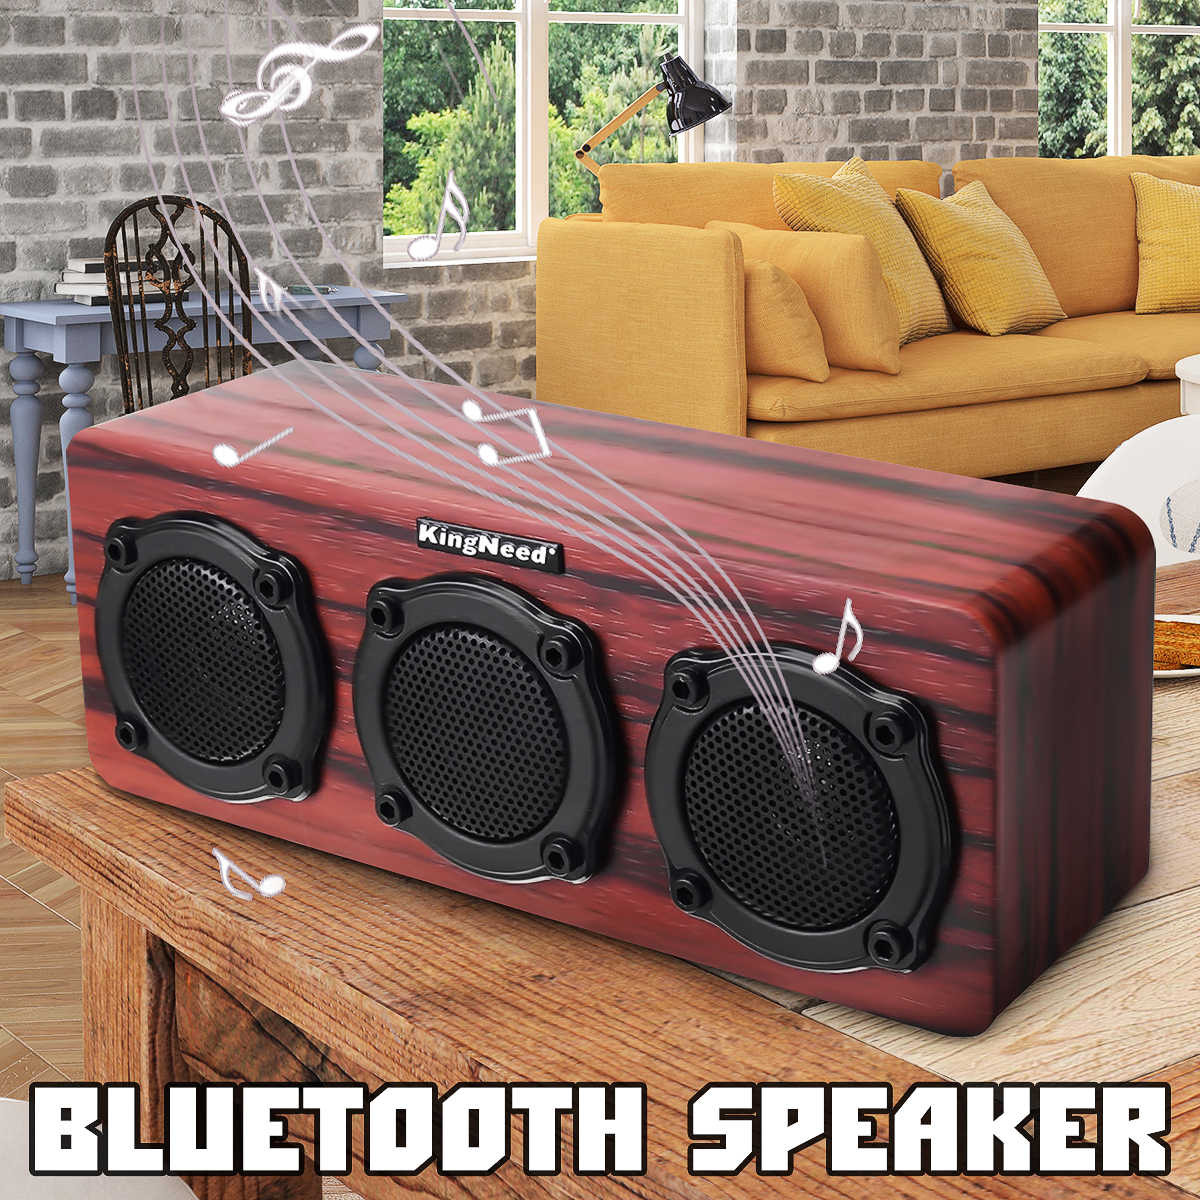 60db Suara Kayu Blurtooth Luar Ruangan Portabel Speaker HI FI Wireless Bass Studio Stereo 2 Ster Speaker 1 Getaran Membran